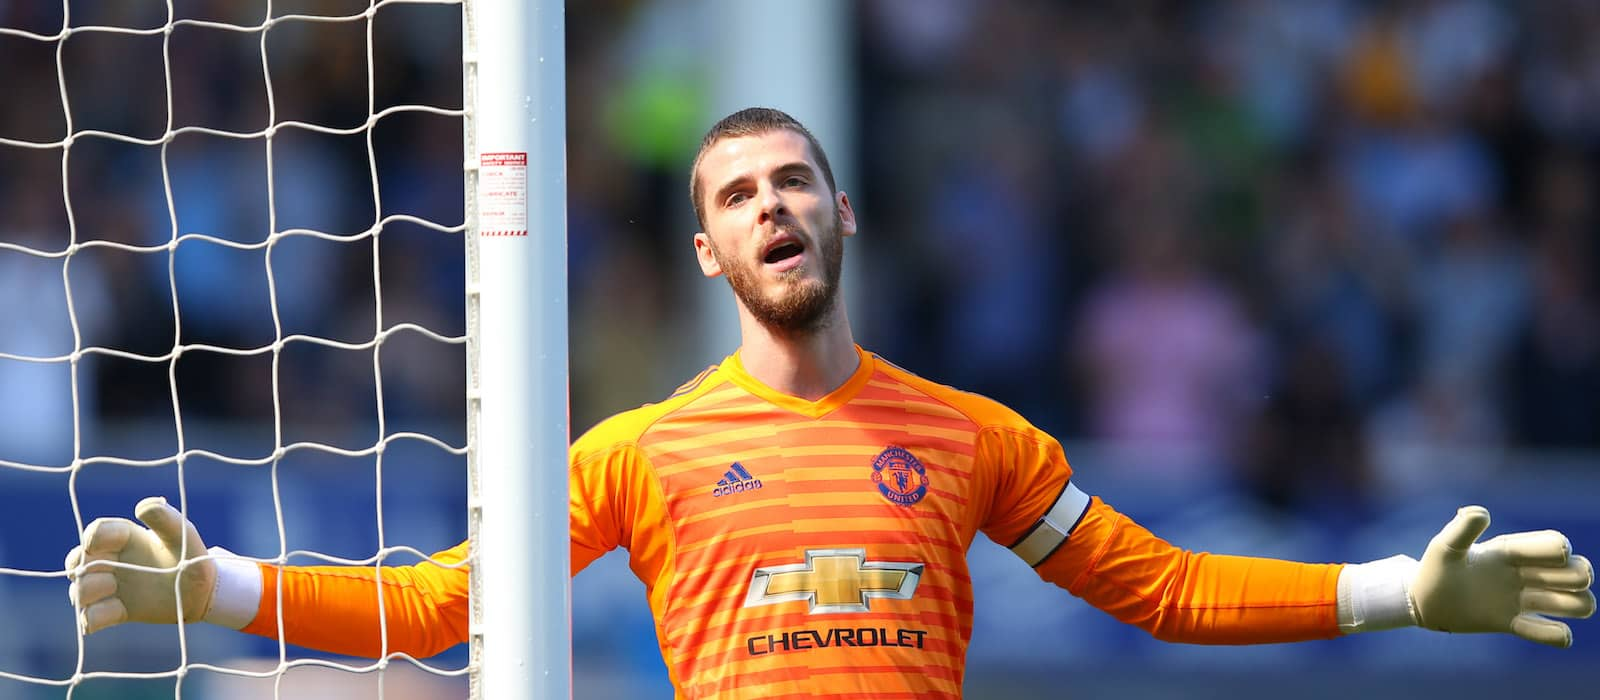 Manchester United fans react to David de Gea's performance vs Manchester City